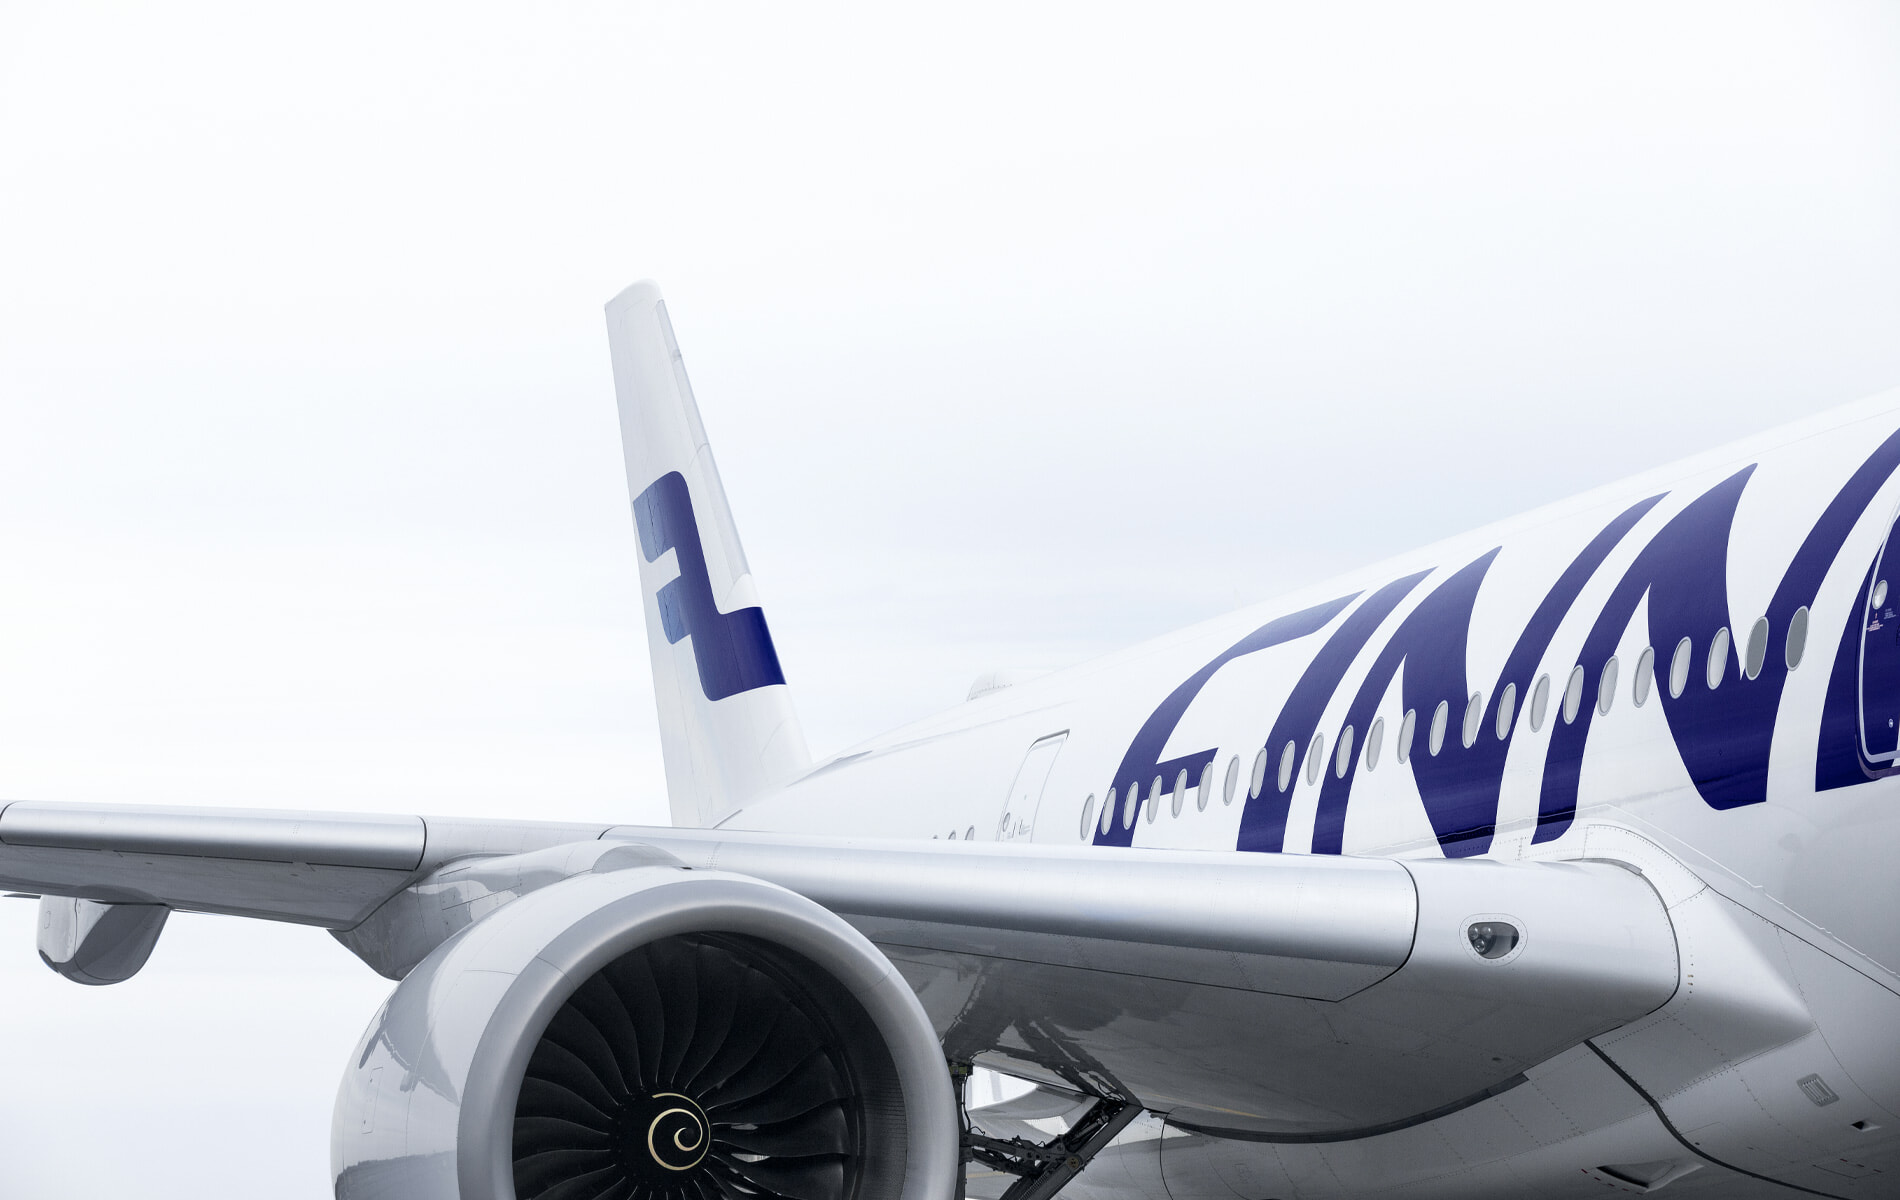 Finnair Airbus A350 detail of side, wing, engine and tail